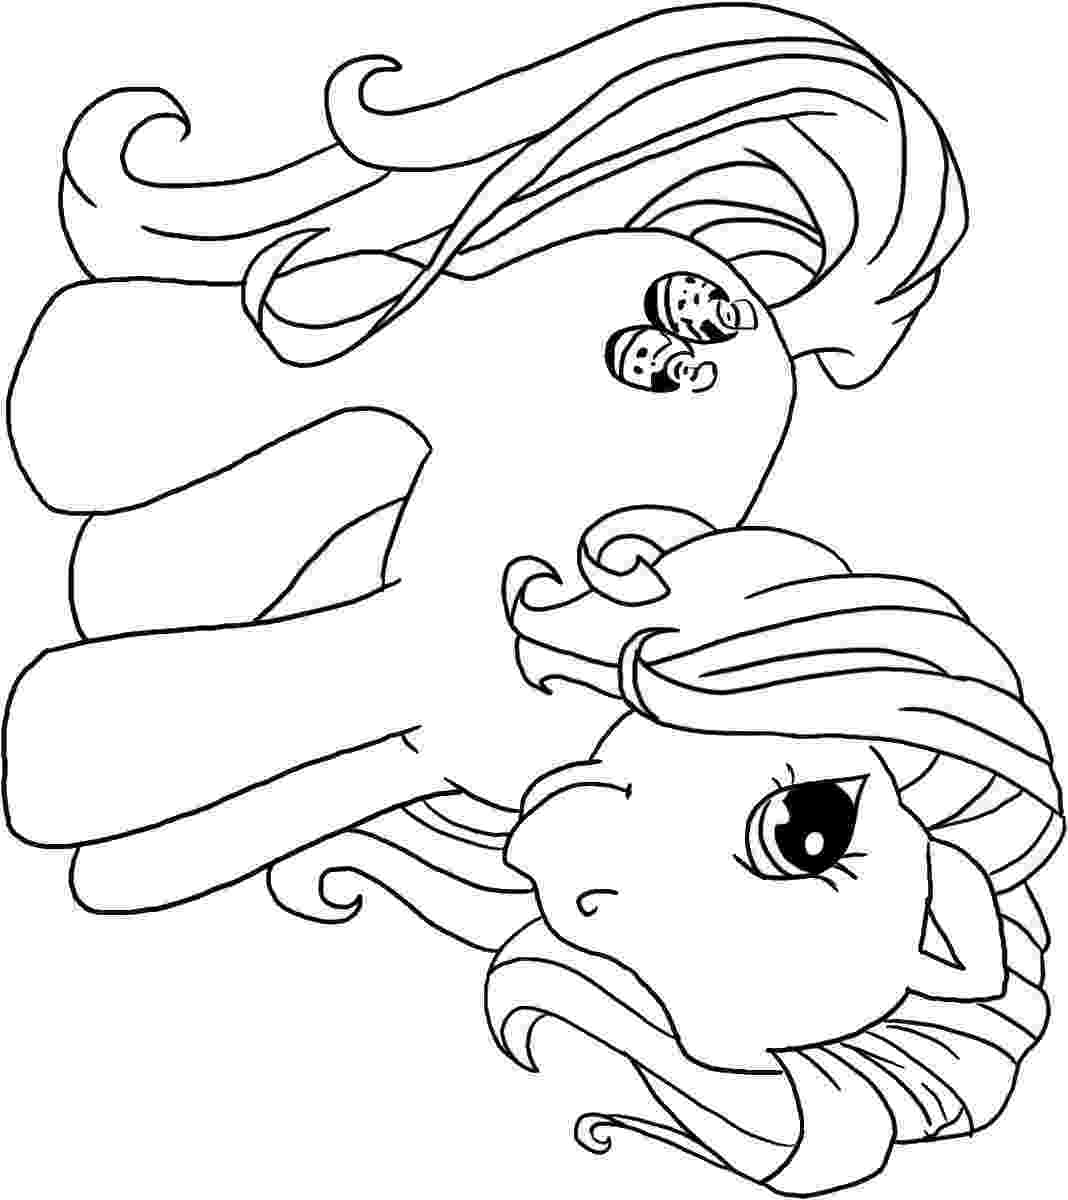 coloring pages of my little pony my little pony colouring sheets fluttershy my little little coloring pages my of pony